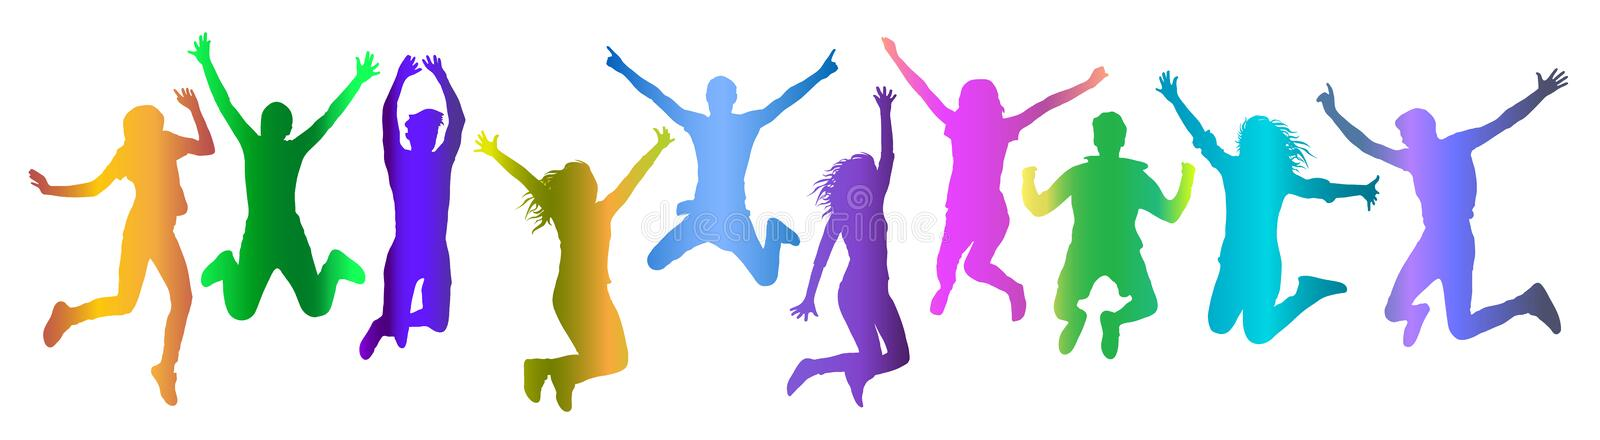 Jumping people crowd silhouette colorful gradient, set. Vector illustration vector illustration